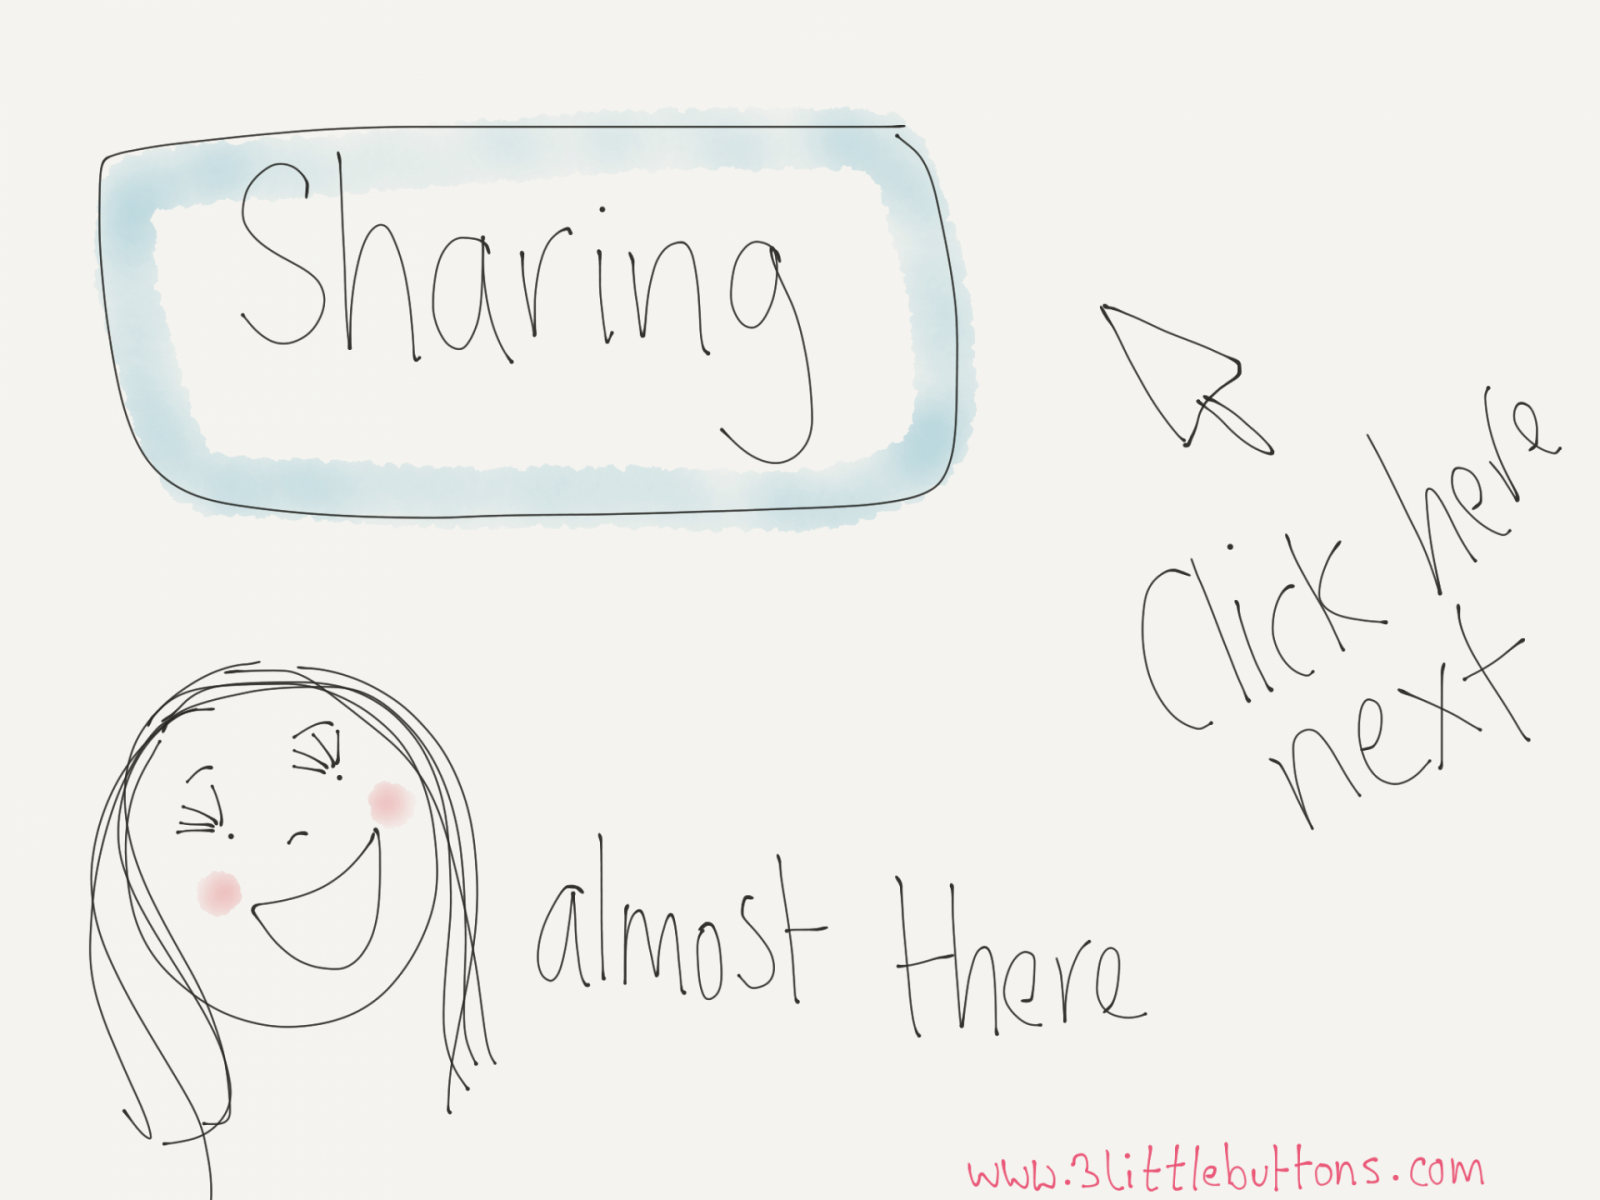 Make Your Blog Posts More Shareable On Twitter